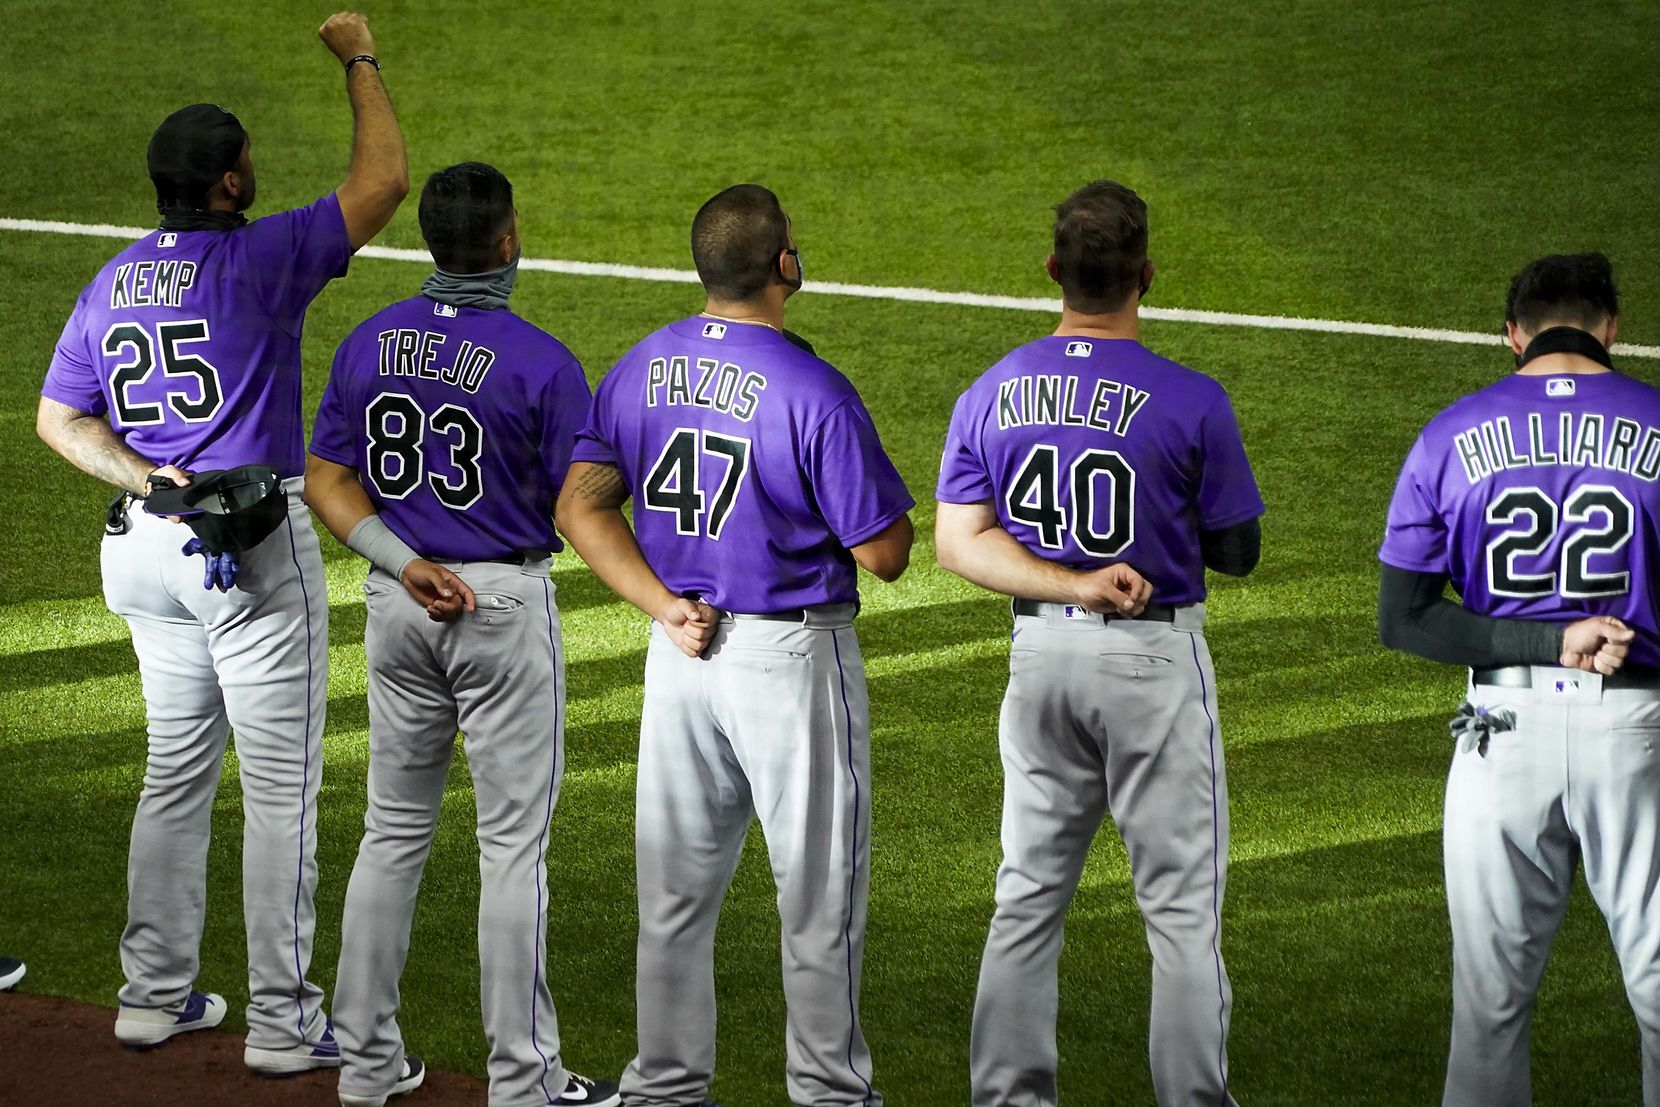 Colorado Rockies outfielder Matt Kemp raises his fist as the team stands for the national anthem before an exhibition game against the Texas Rangers at Globe Life Field on Tuesday, July 21, 2020. (Smiley N. Pool/The Dallas Morning News)